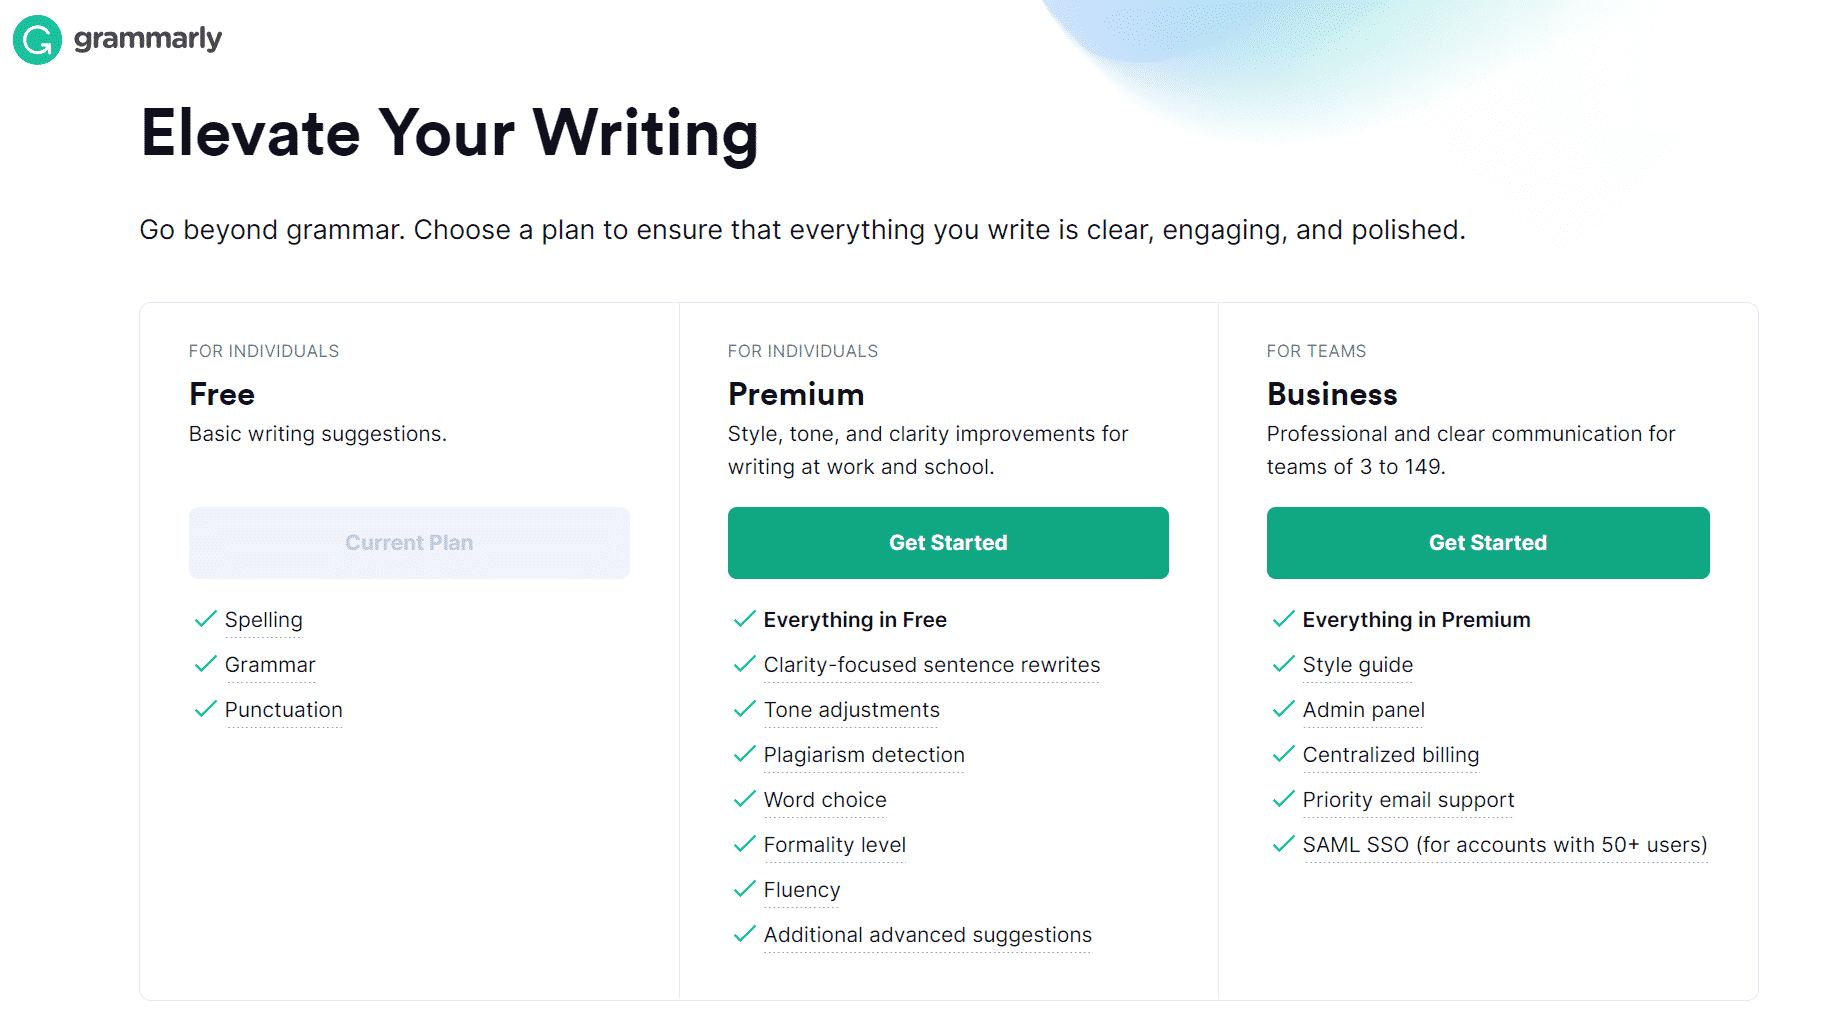 Grammarly - Elevate your writing - Plans